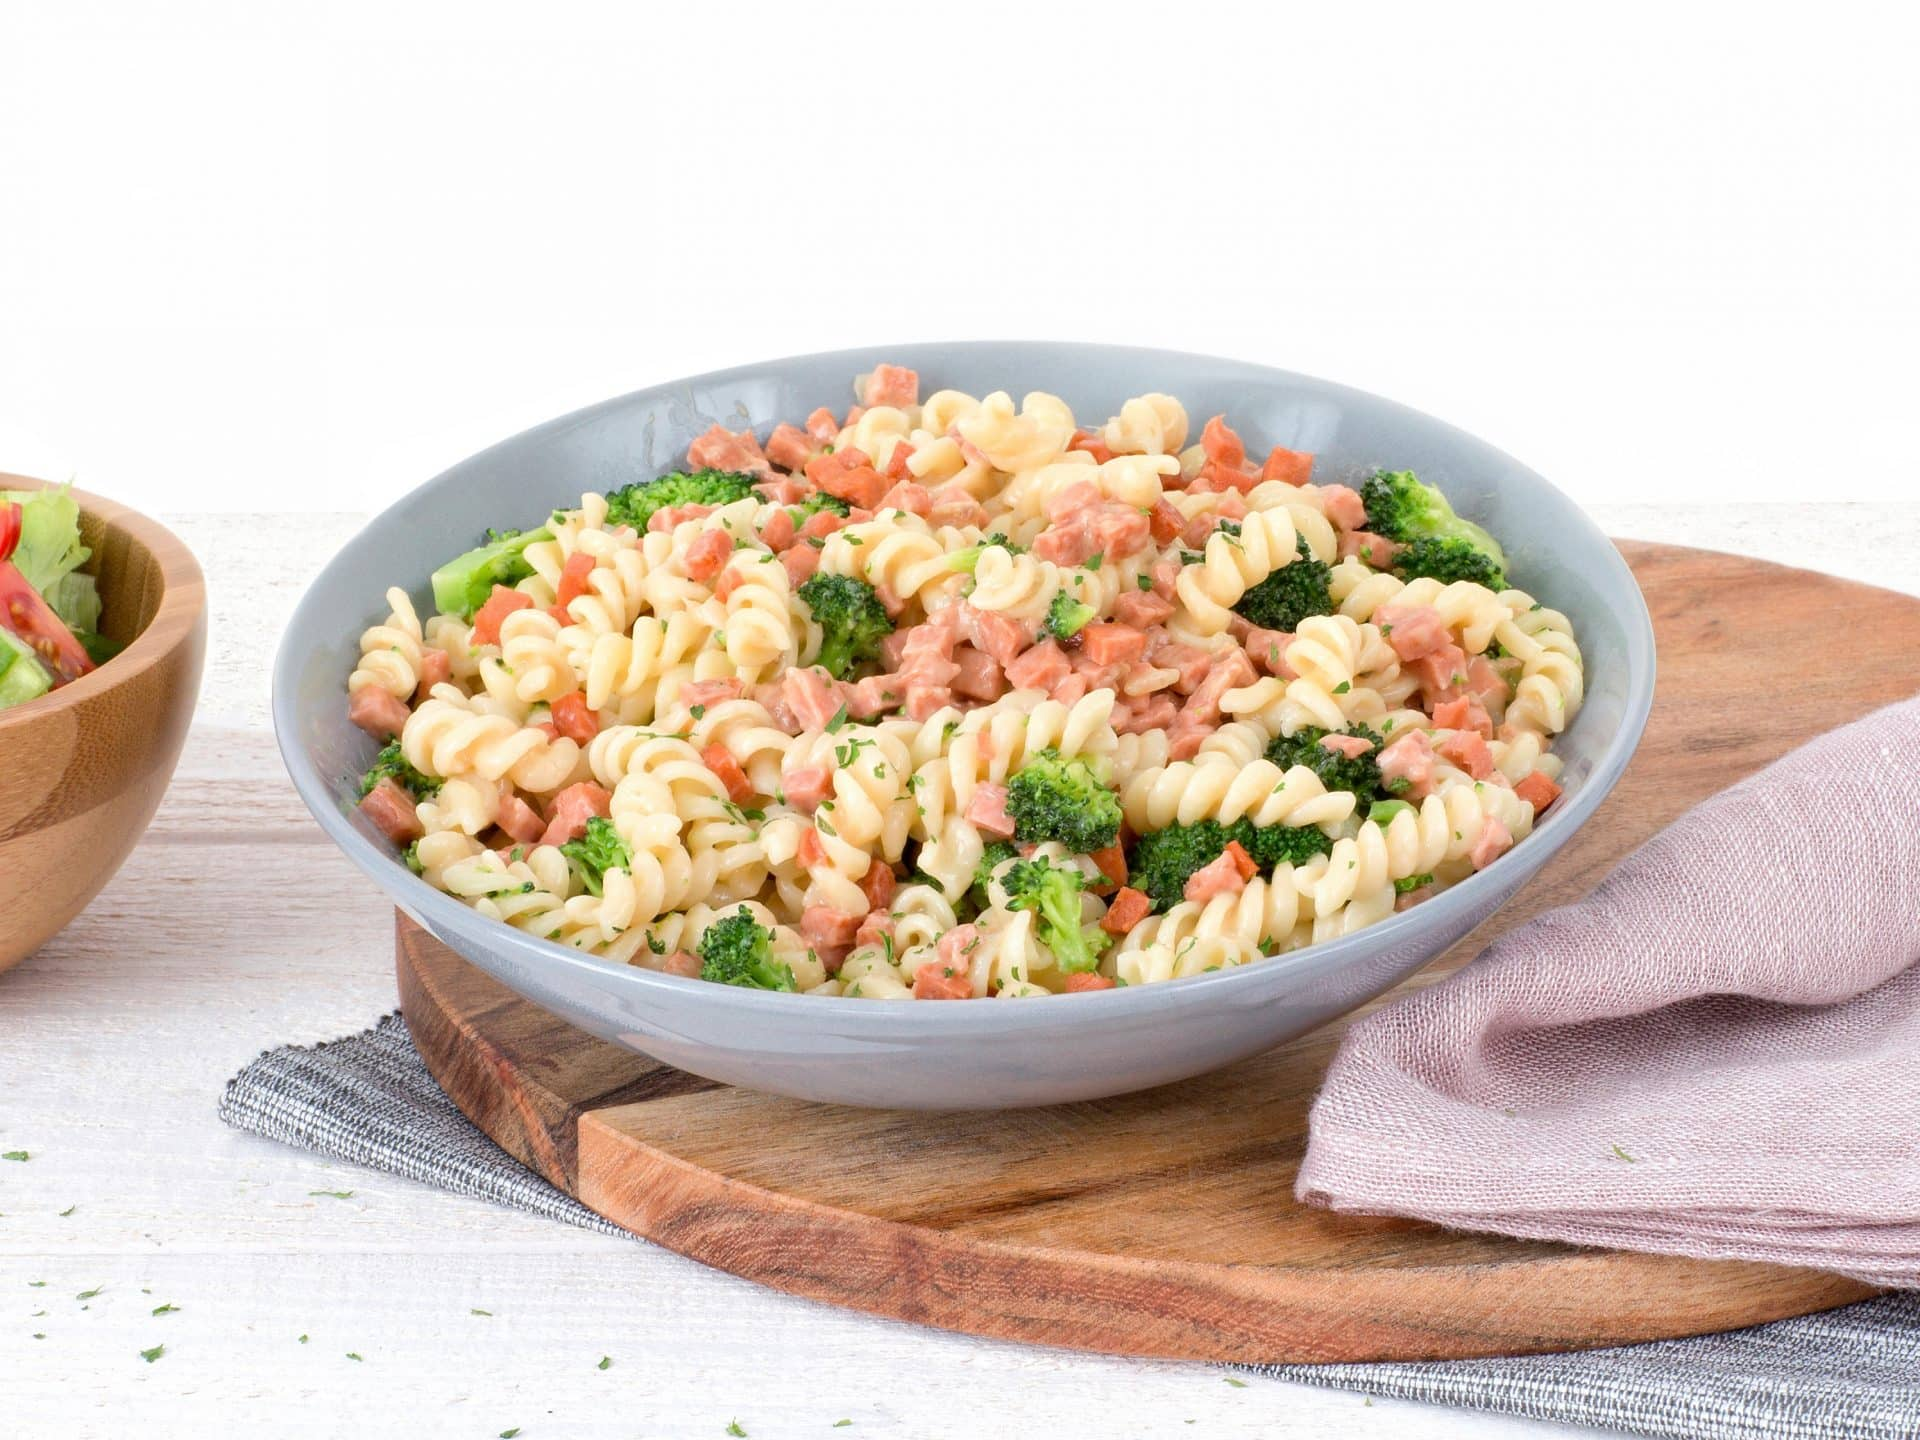 Meat substitute: Vegetarian Diced Ham